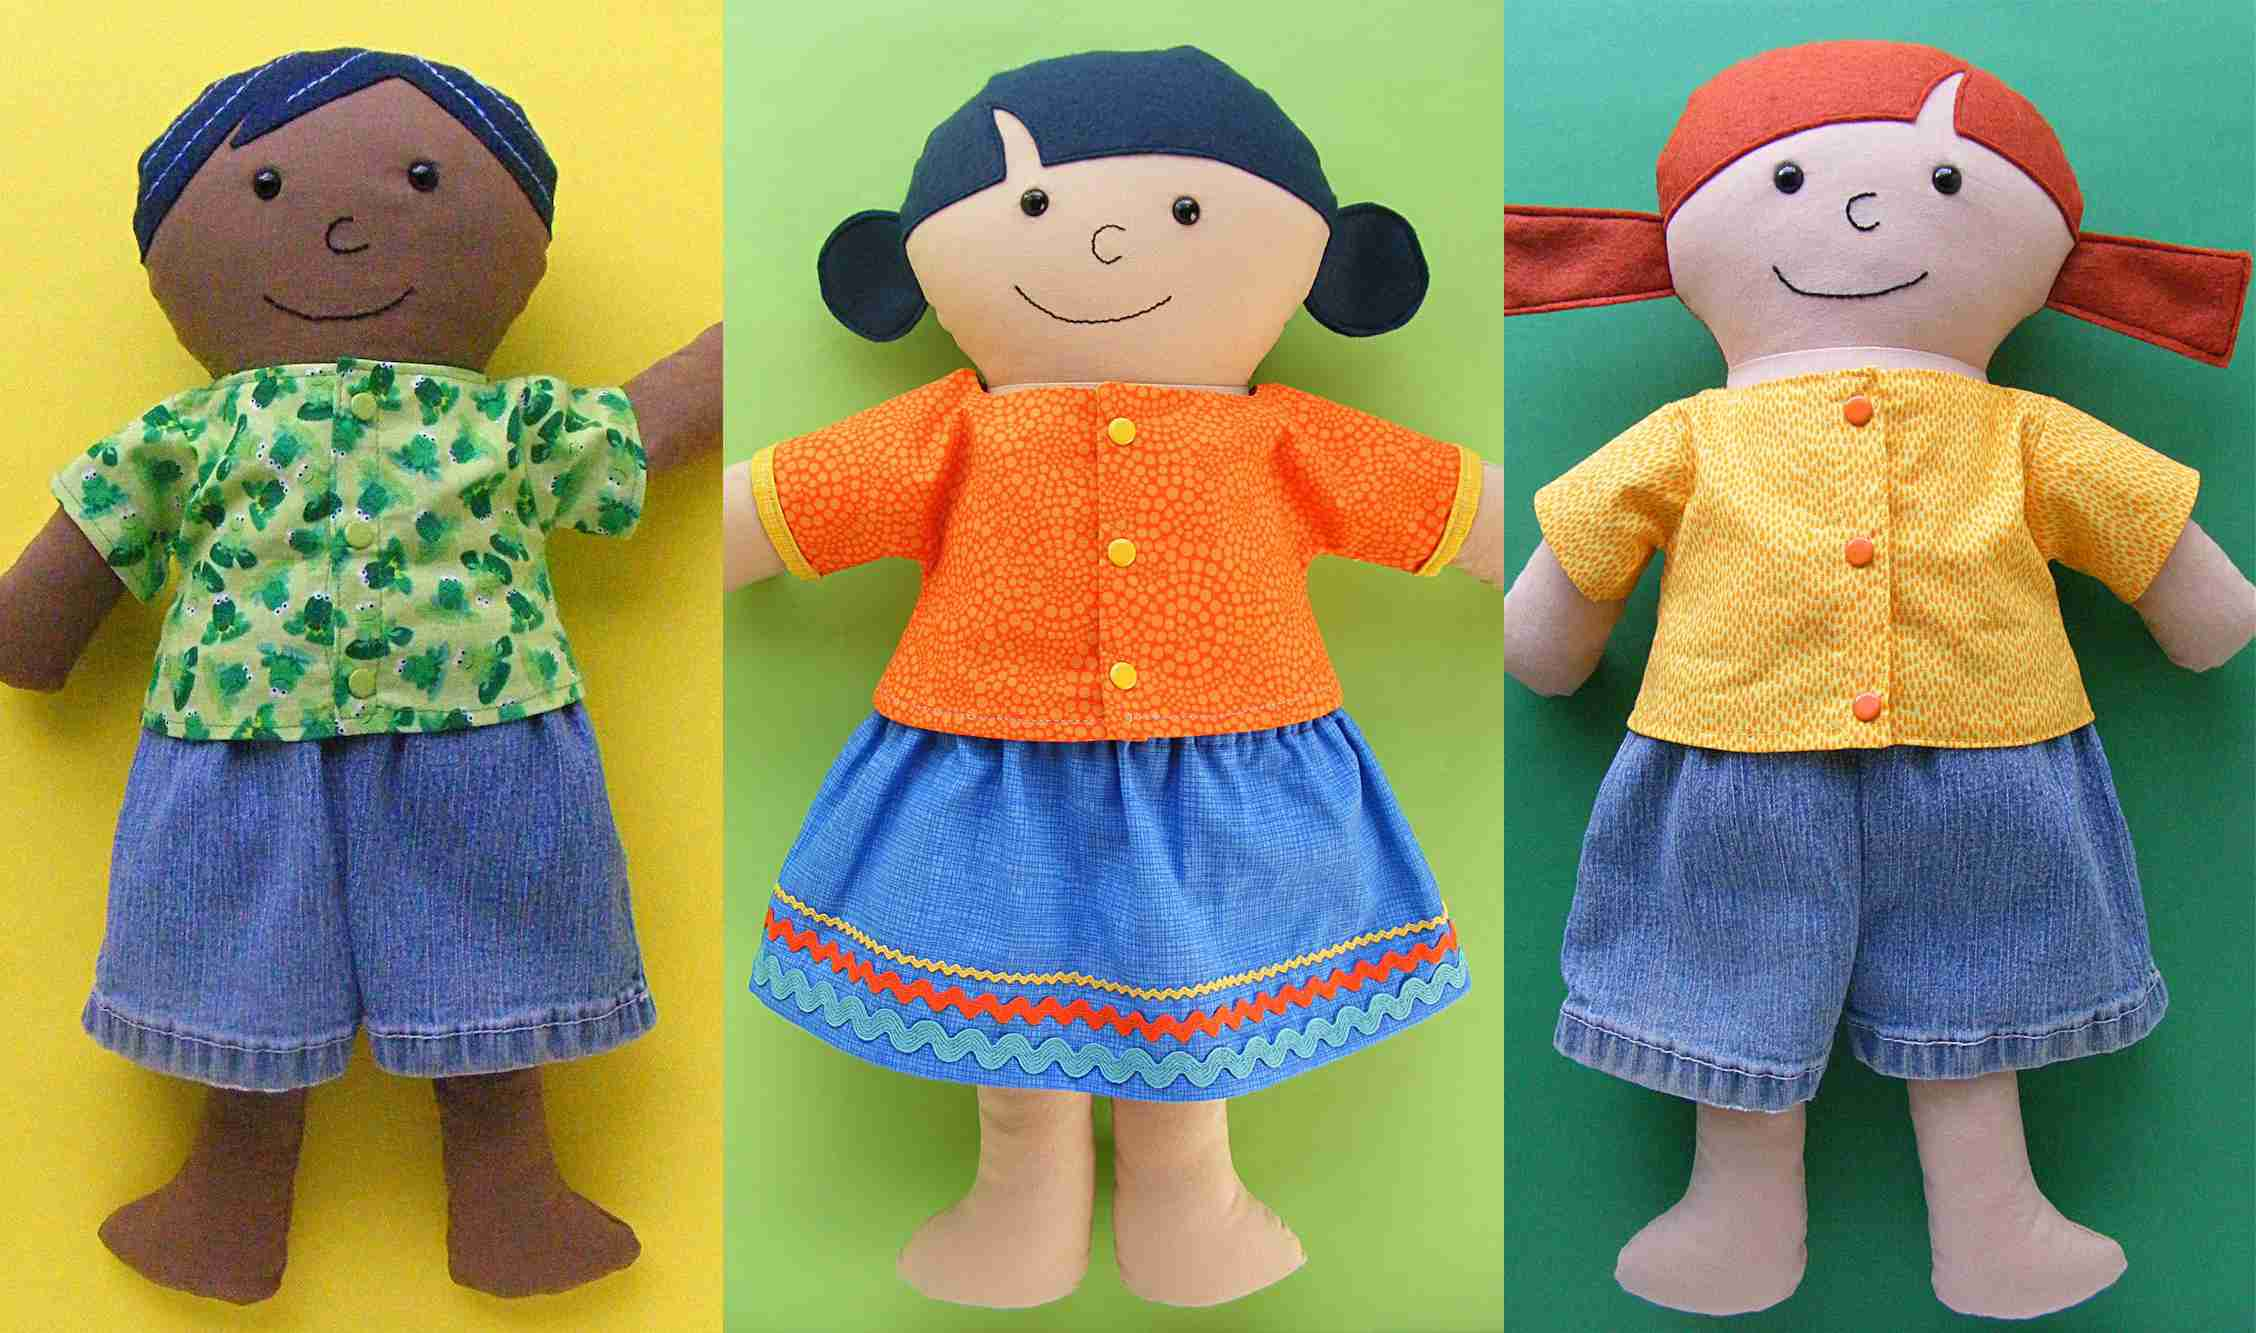 Easy-sew doll shirt, shorts, and skirt for three dolls.